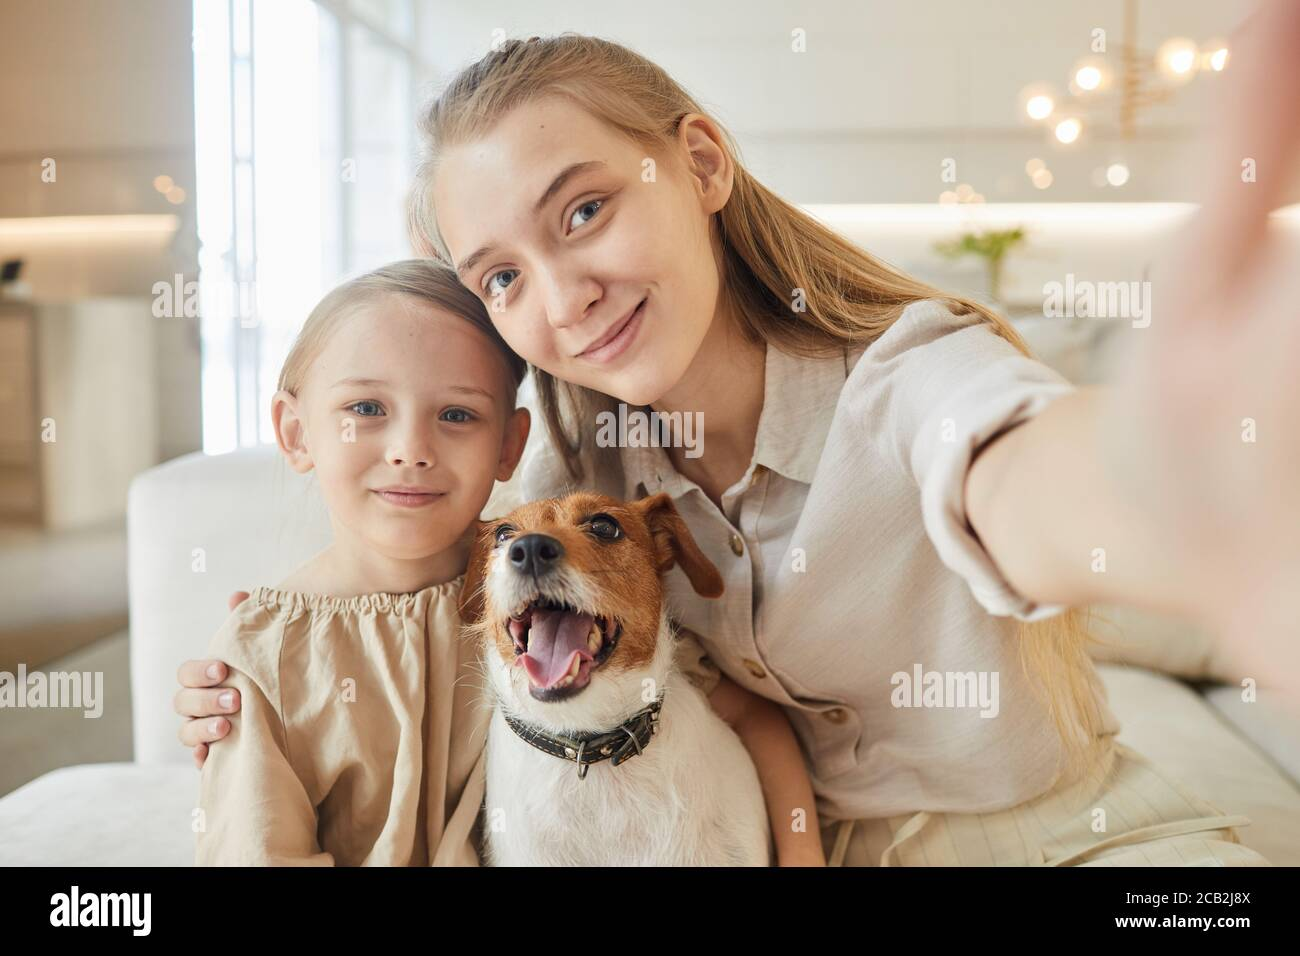 Warm-toned portrait of two sisters taking selfie with pet dog and looking at camera while sitting on couch in minimal home interior, copy space Stock Photo